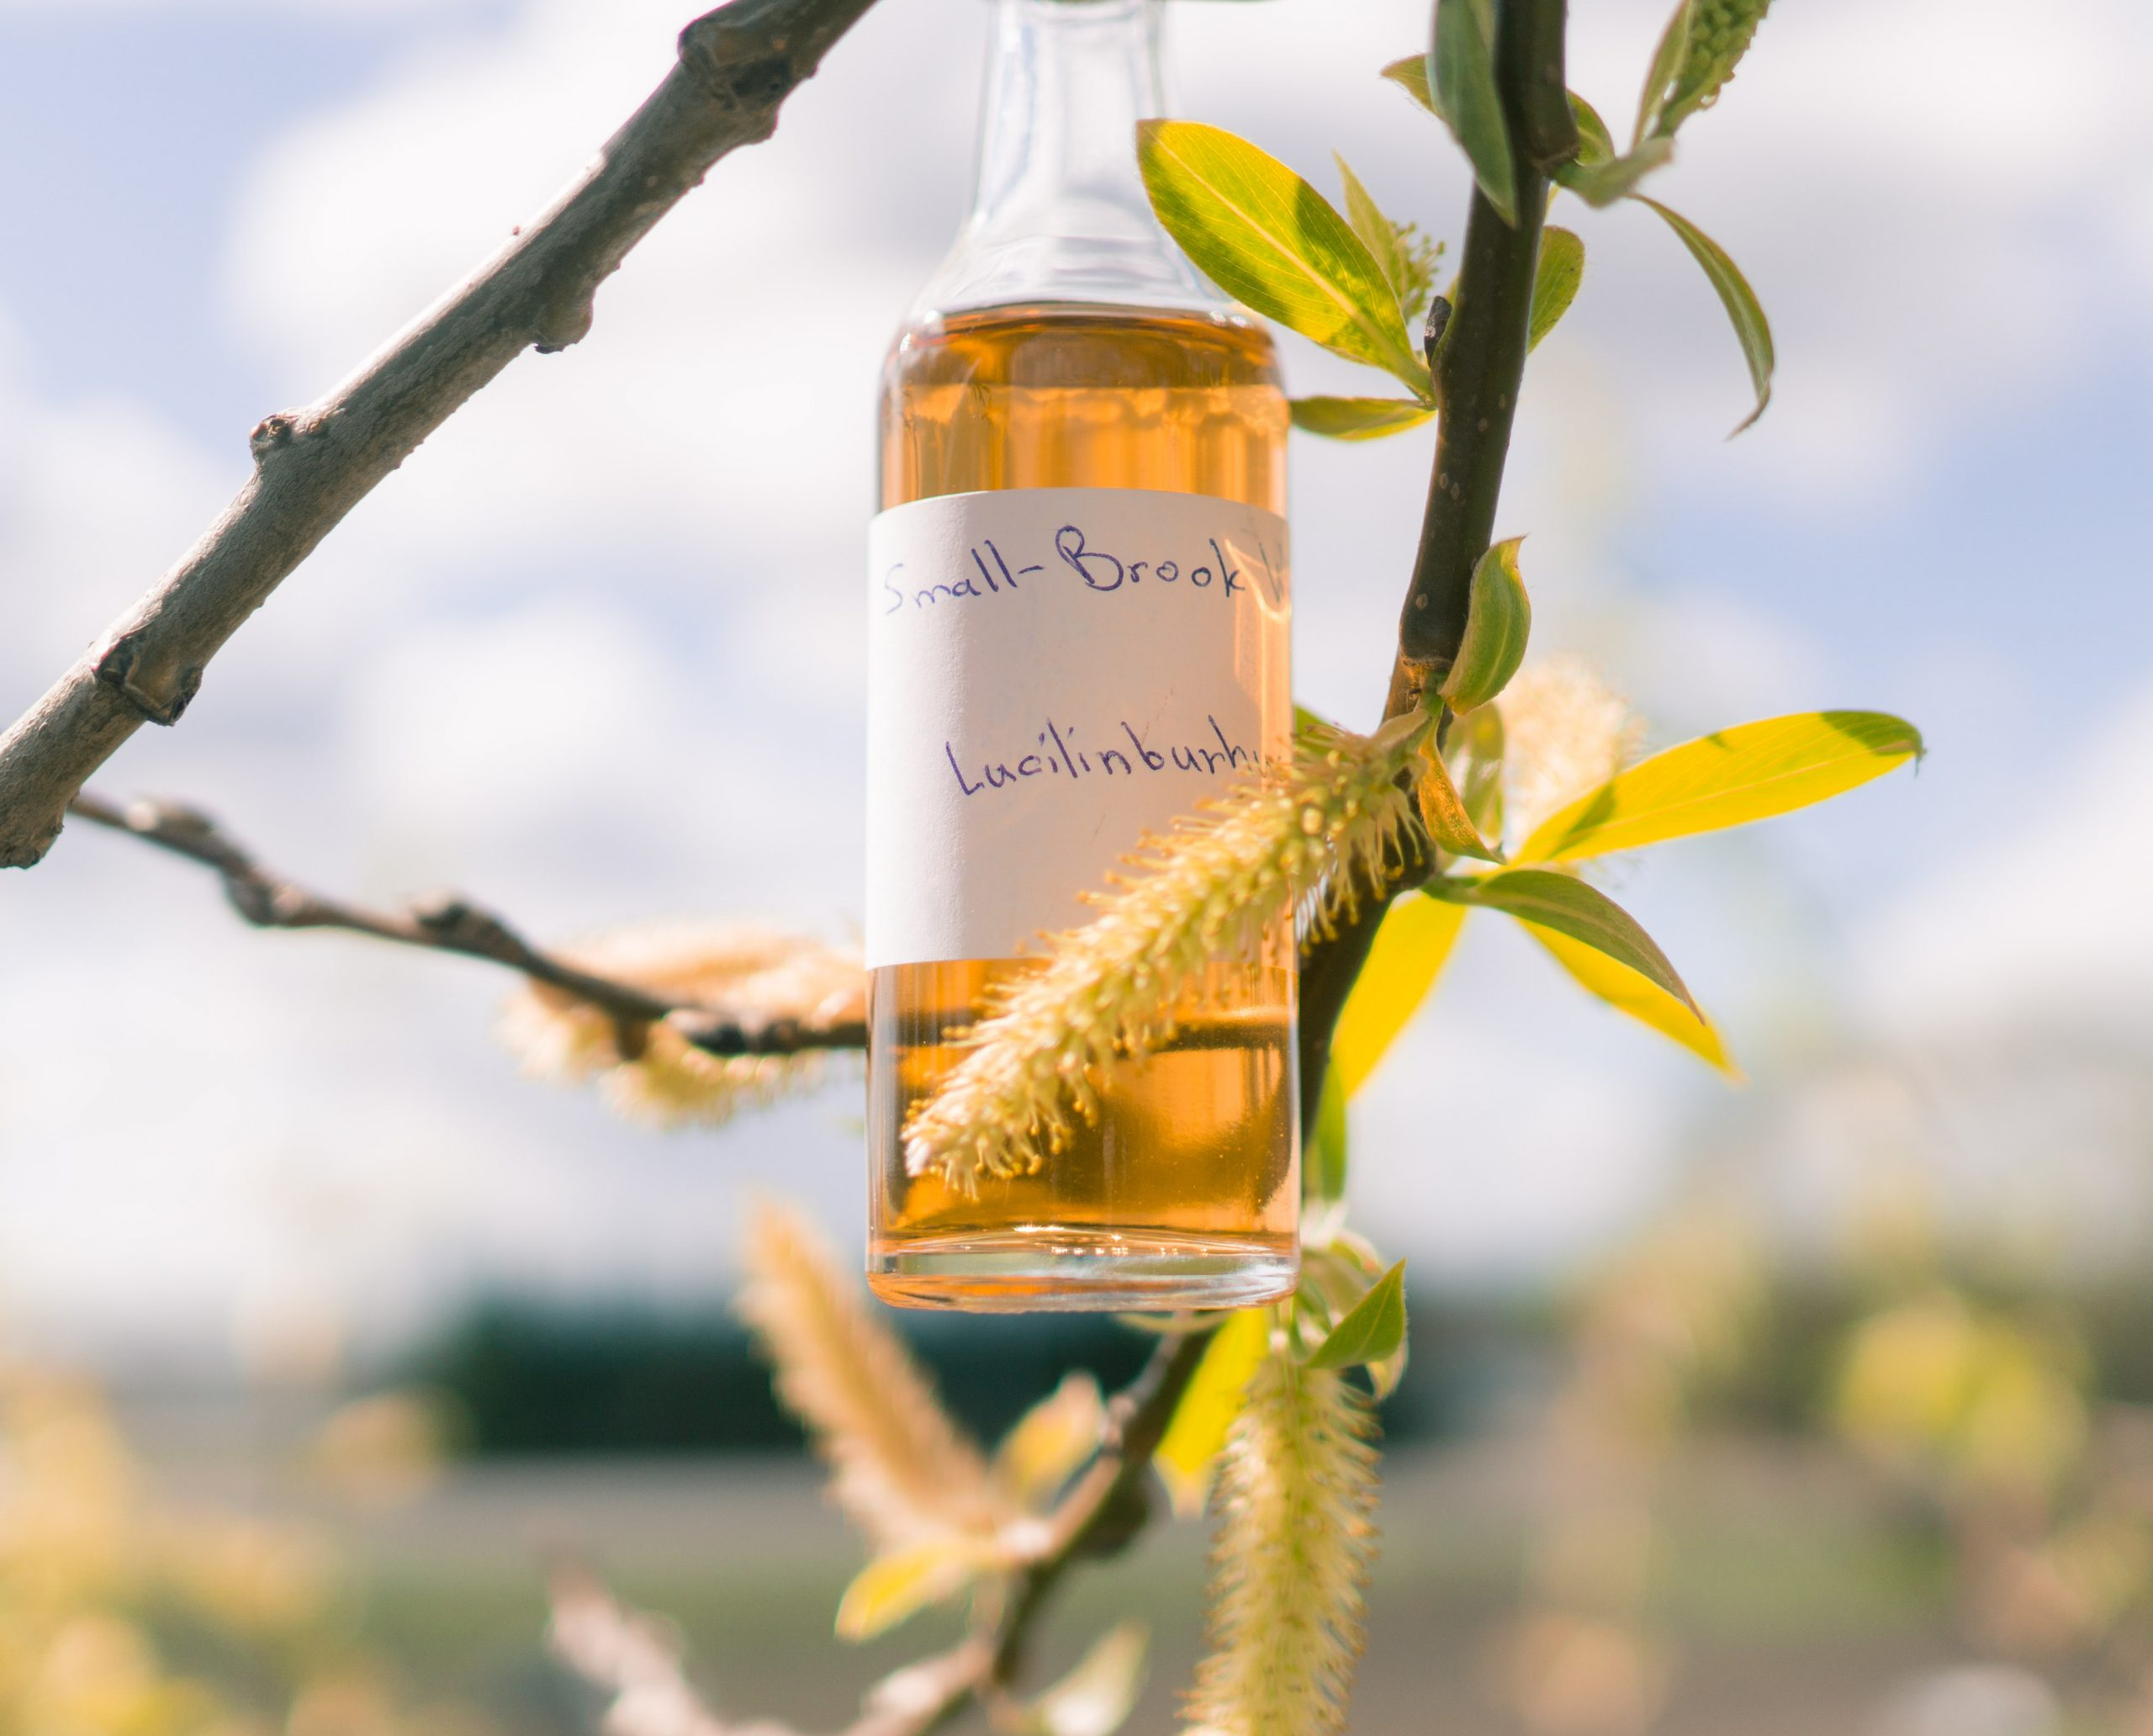 Small-brook Lucilinburhuc whisky from Luxembourg